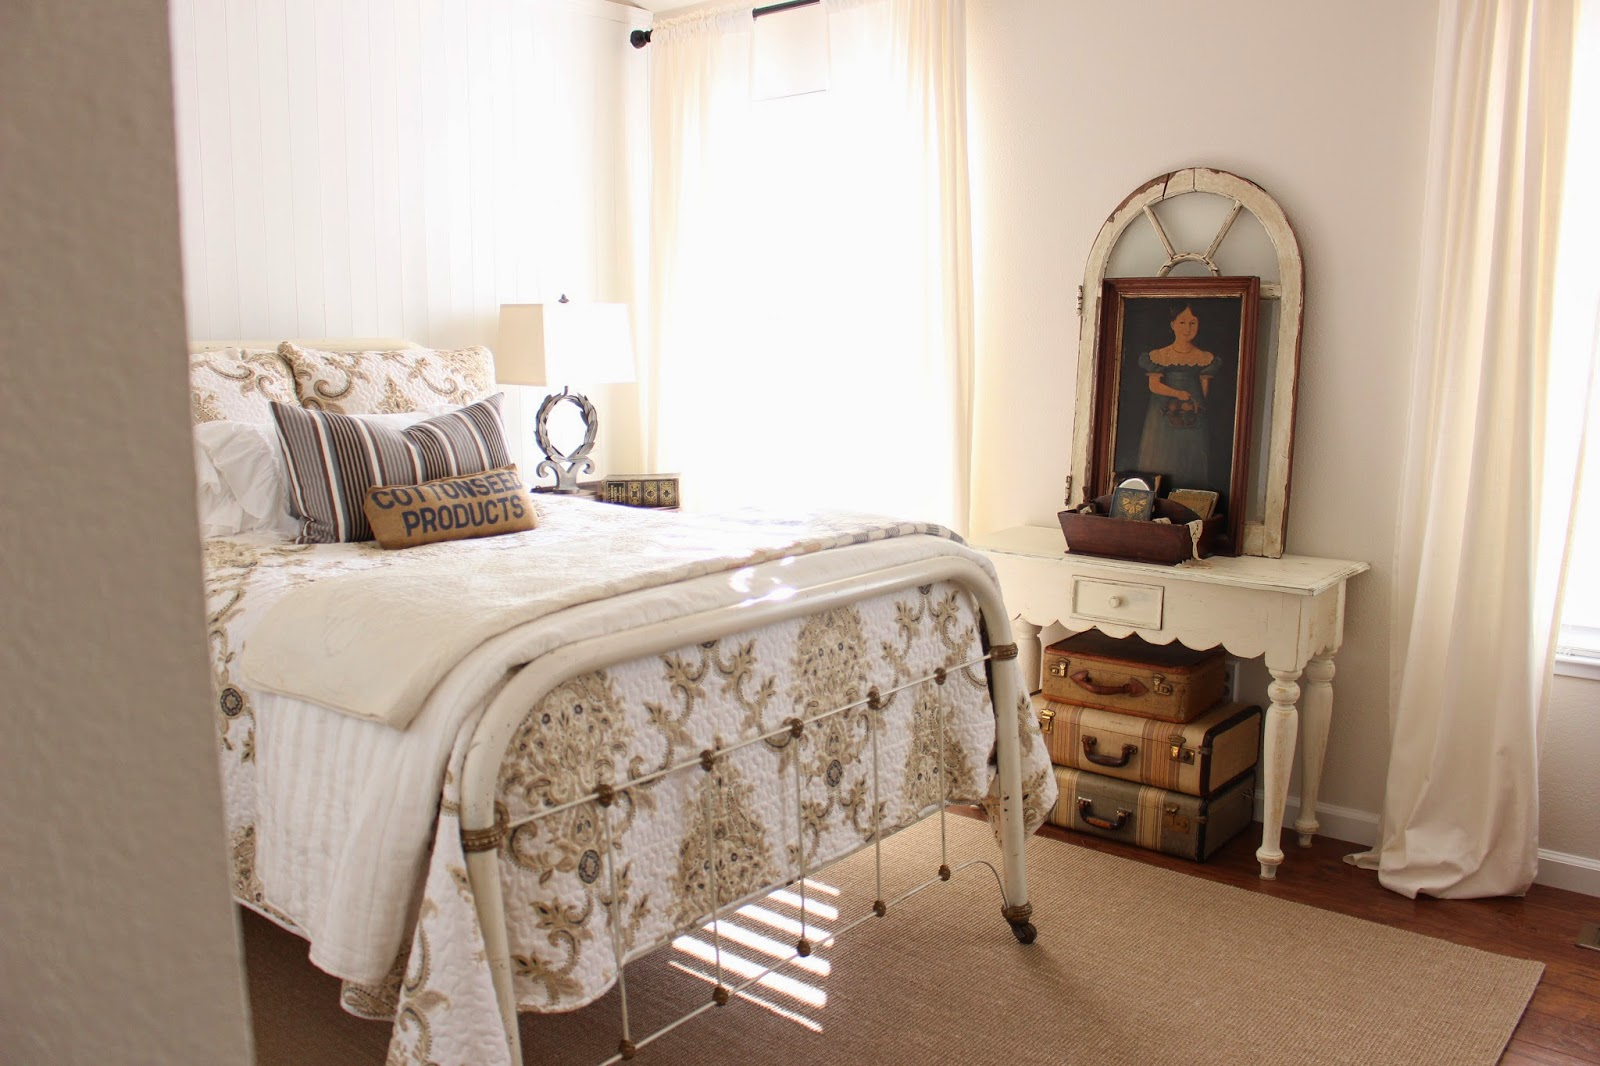 Sweet cottage dreams farmhouse style guest room for Farmhouse style bedroom